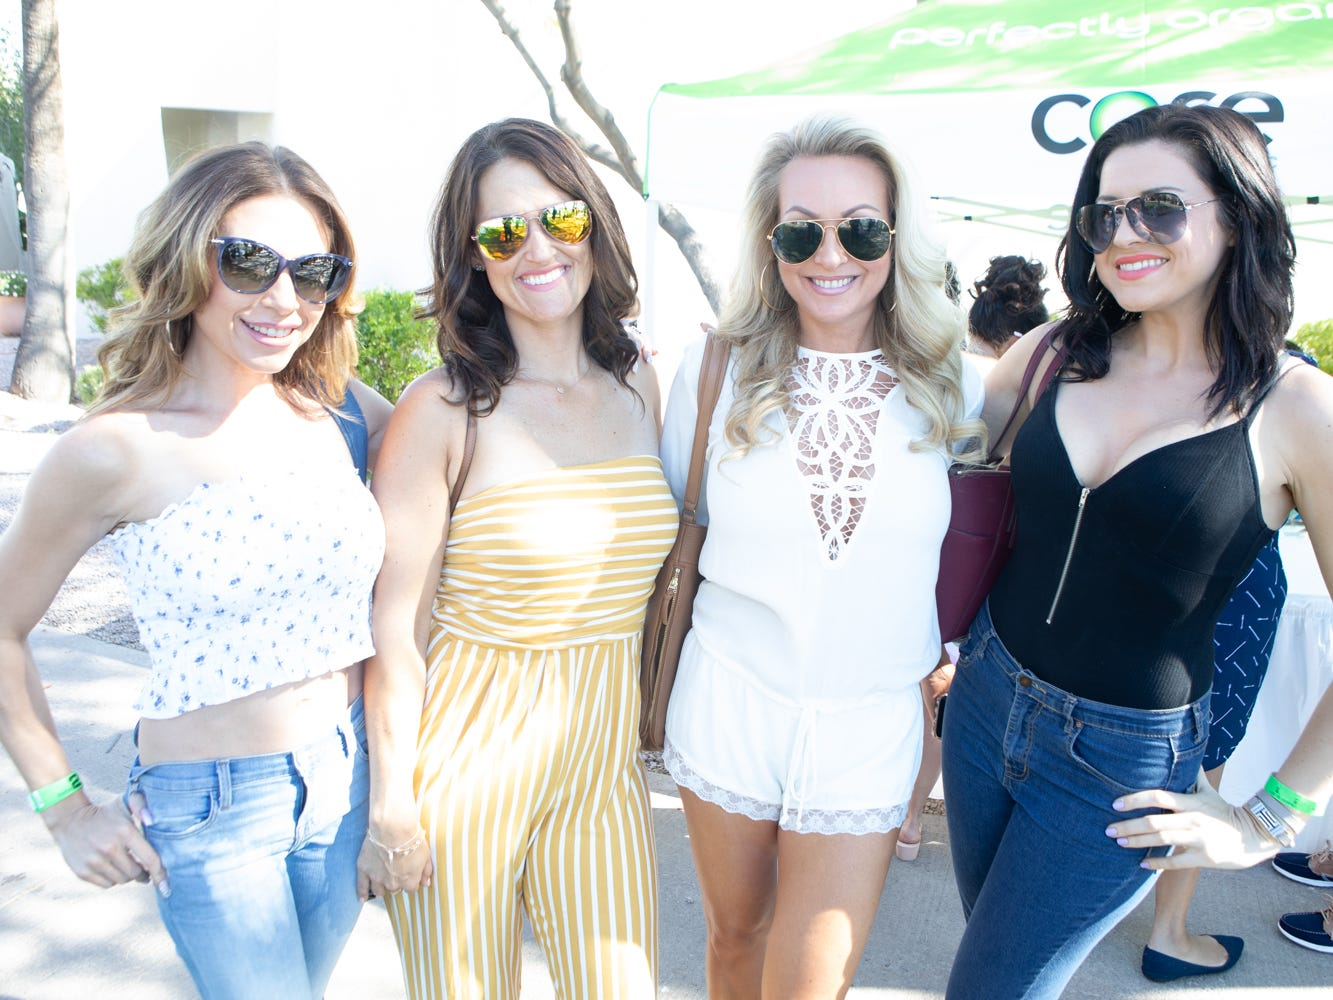 These gals were all smiles at the Scottsdale Culinary Festival on April 13, 2019.